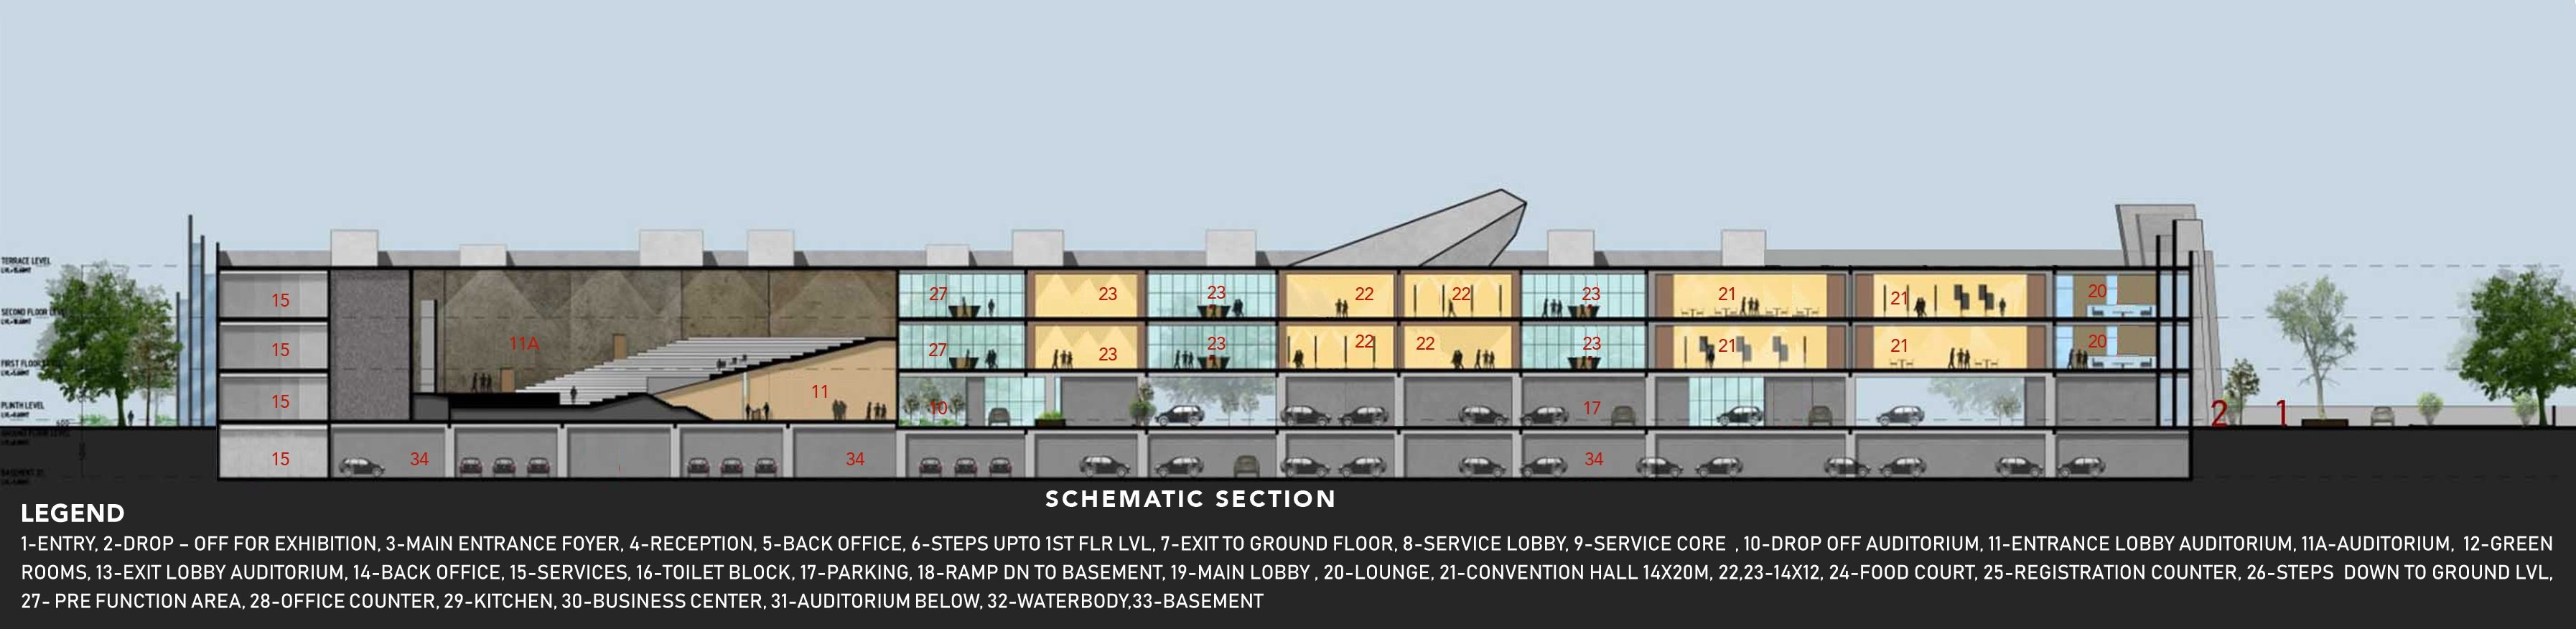 SCHEMATIC SECTION sanjay puri architects}